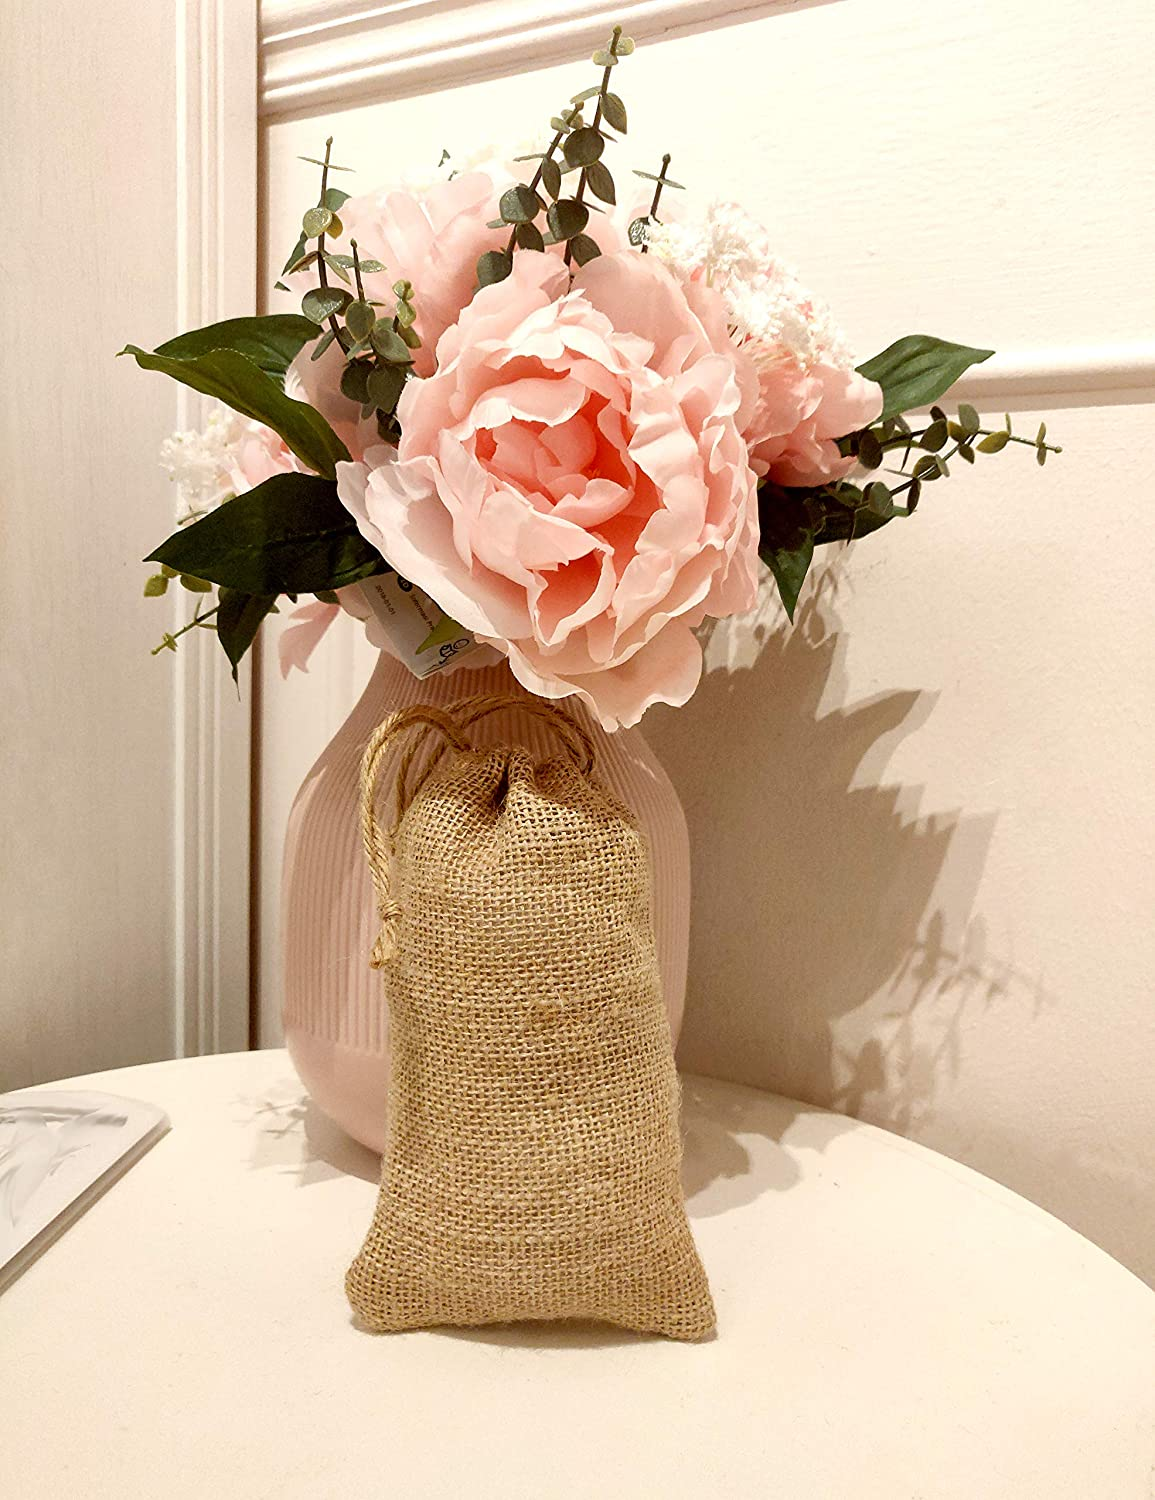 YUXIER 24 Small Burlap Bags with Drawstring Burlap Favor Bags Jute Bags Burlap Jewelry Bags Burlap Tie Bags Small Burlap Sack 6.9 x 4.3 in for Showers Party Arts Crafts Projects Presents Snacks Numberonebay